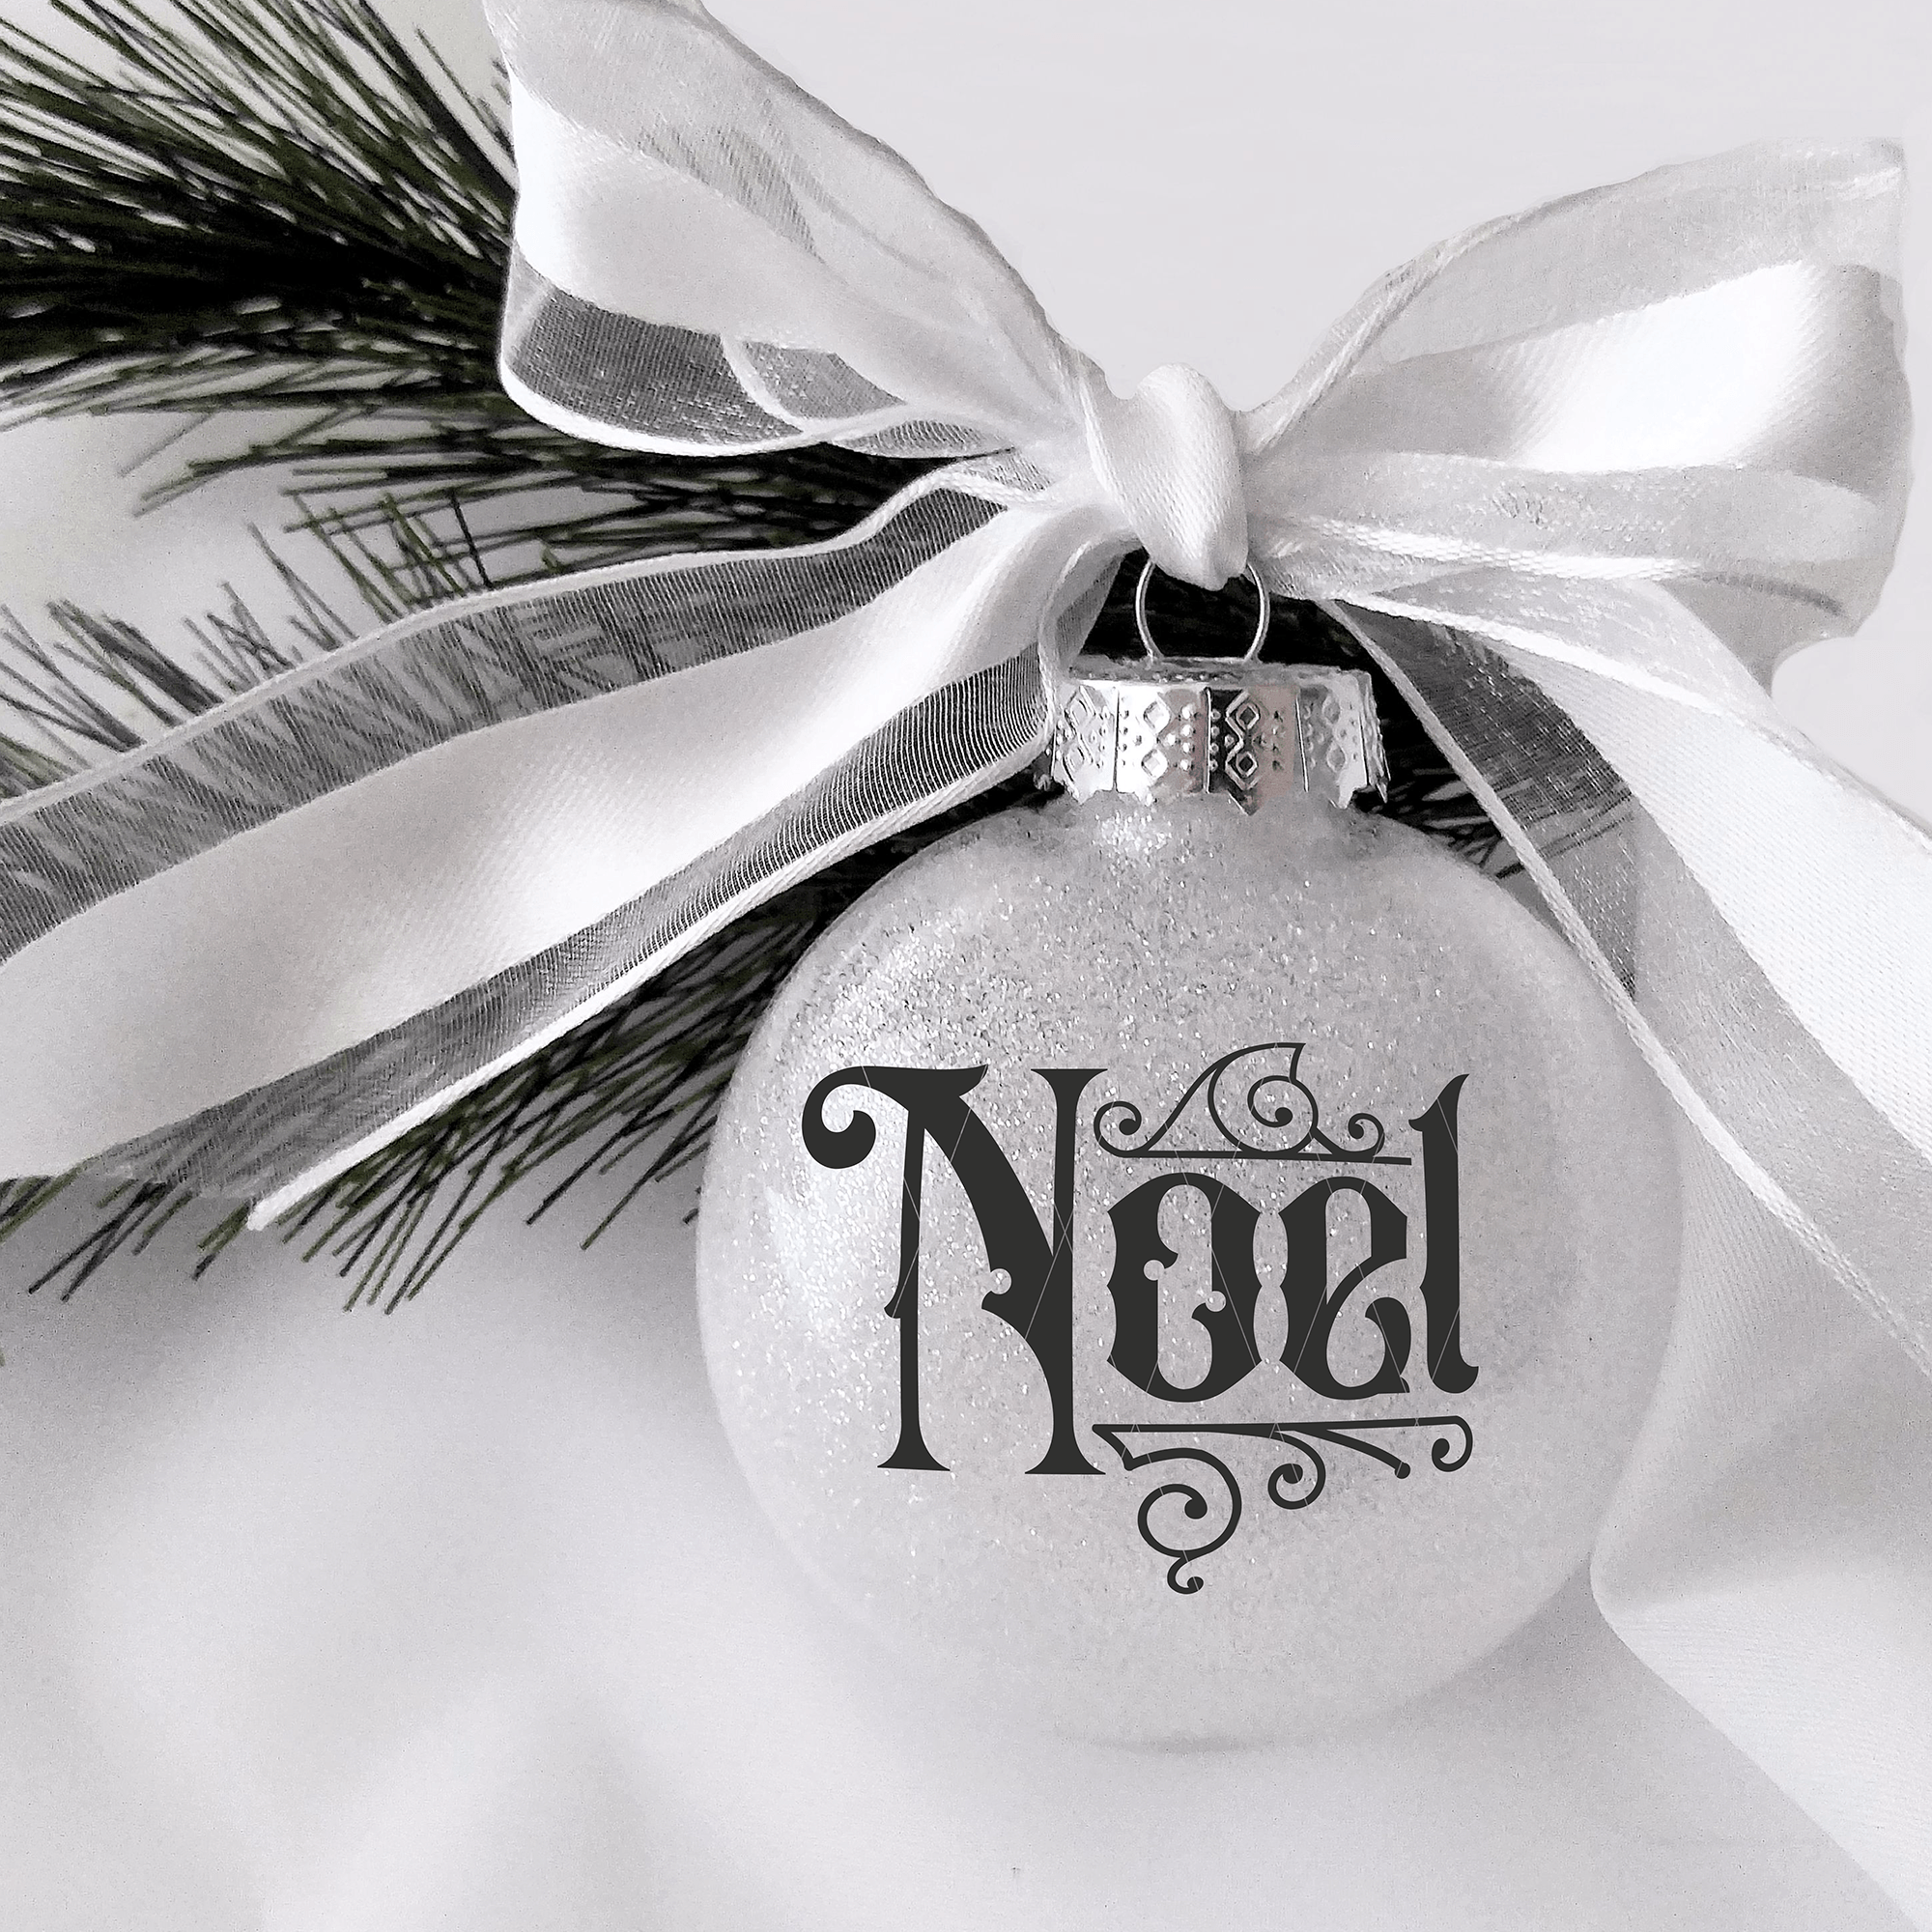 Gothic Christmas Ornament SVG File - Noel